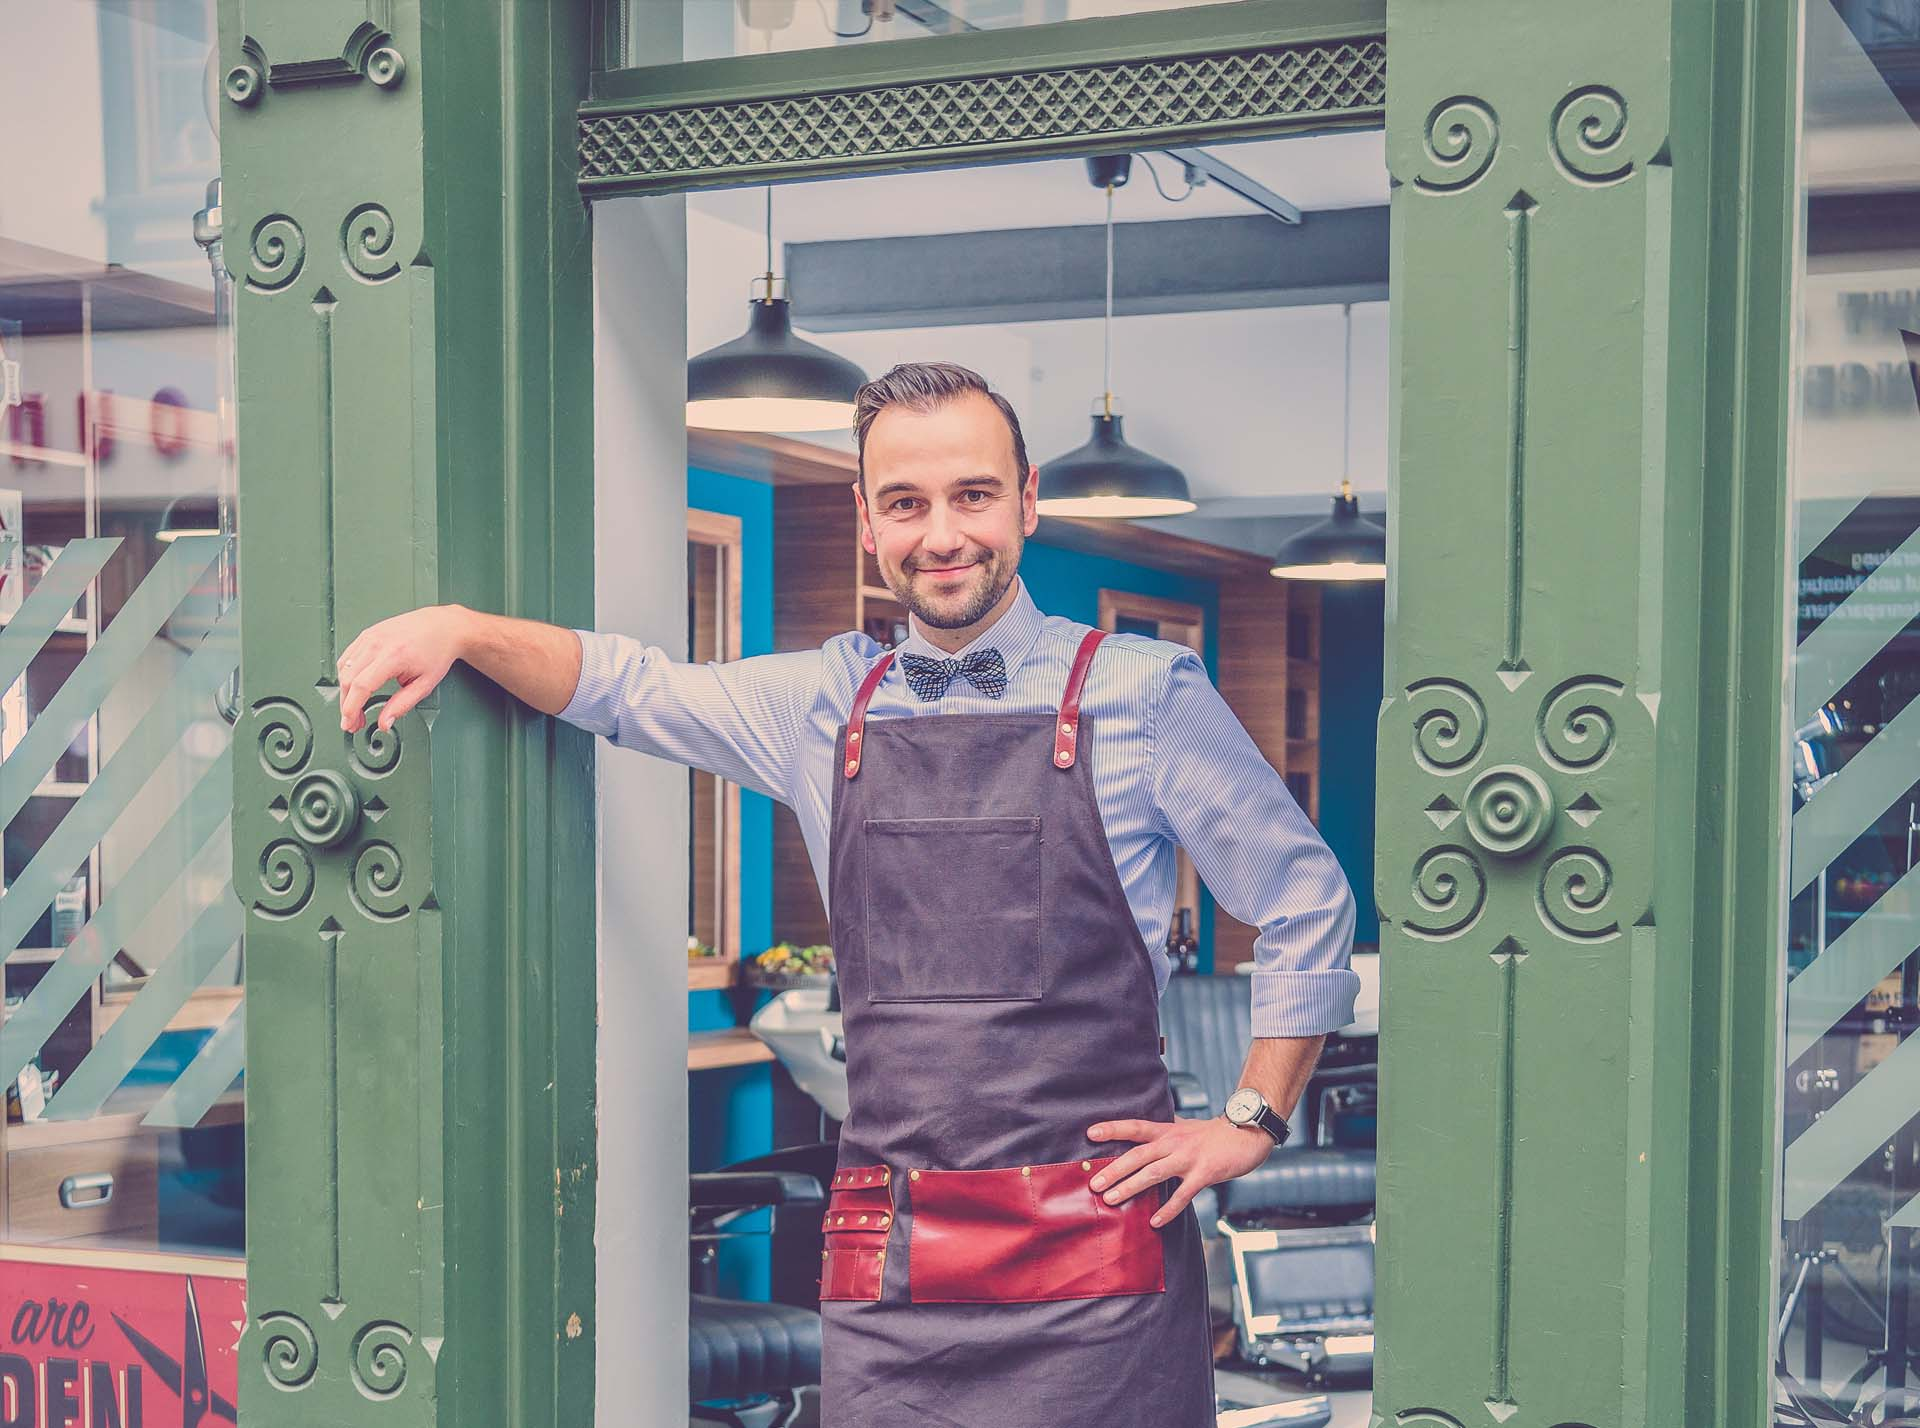 The Barber Erfurt